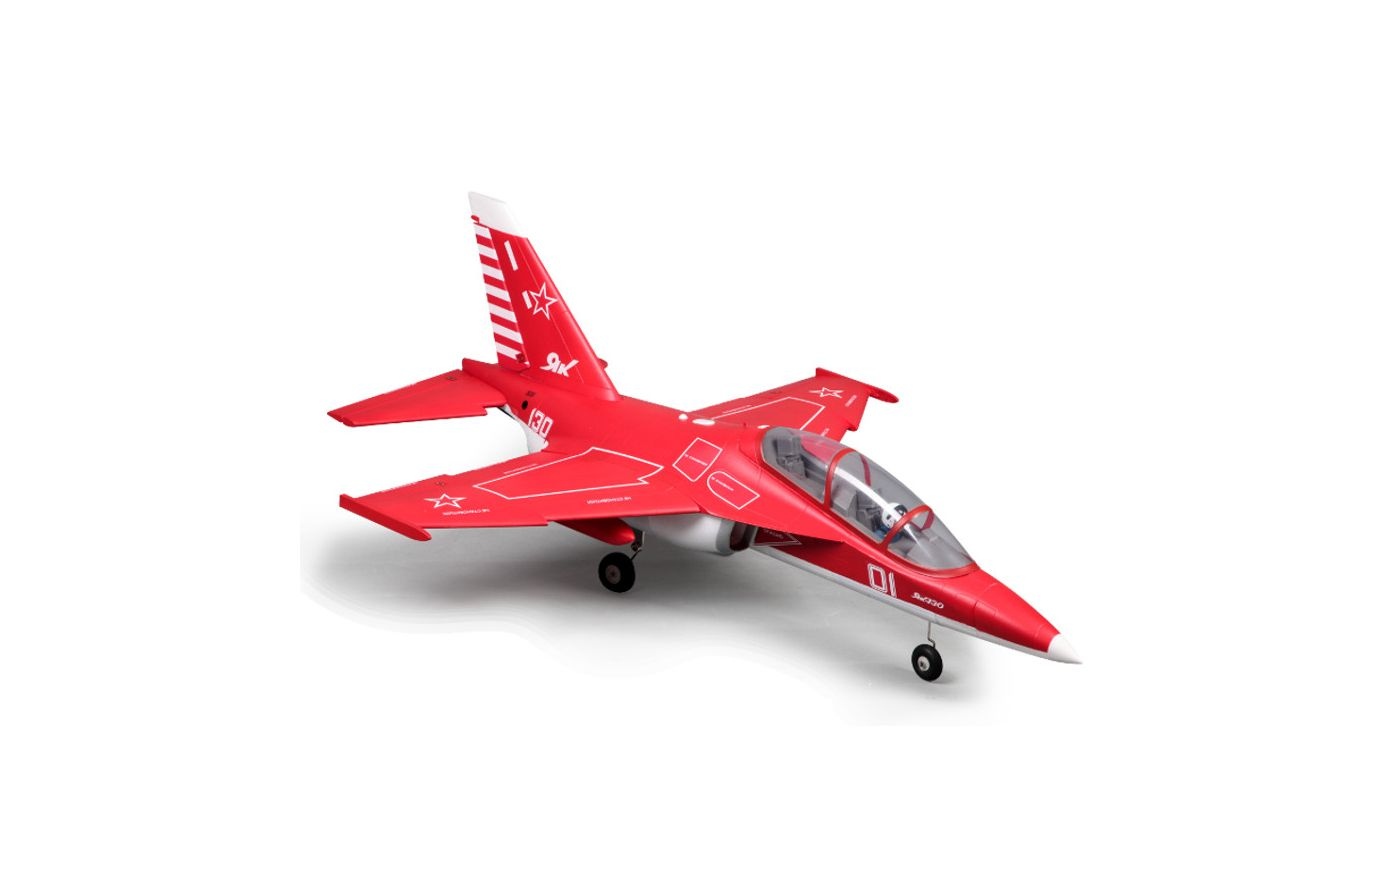 Image for Yak 130 Jet PNP, 70mm: Red from Force RC